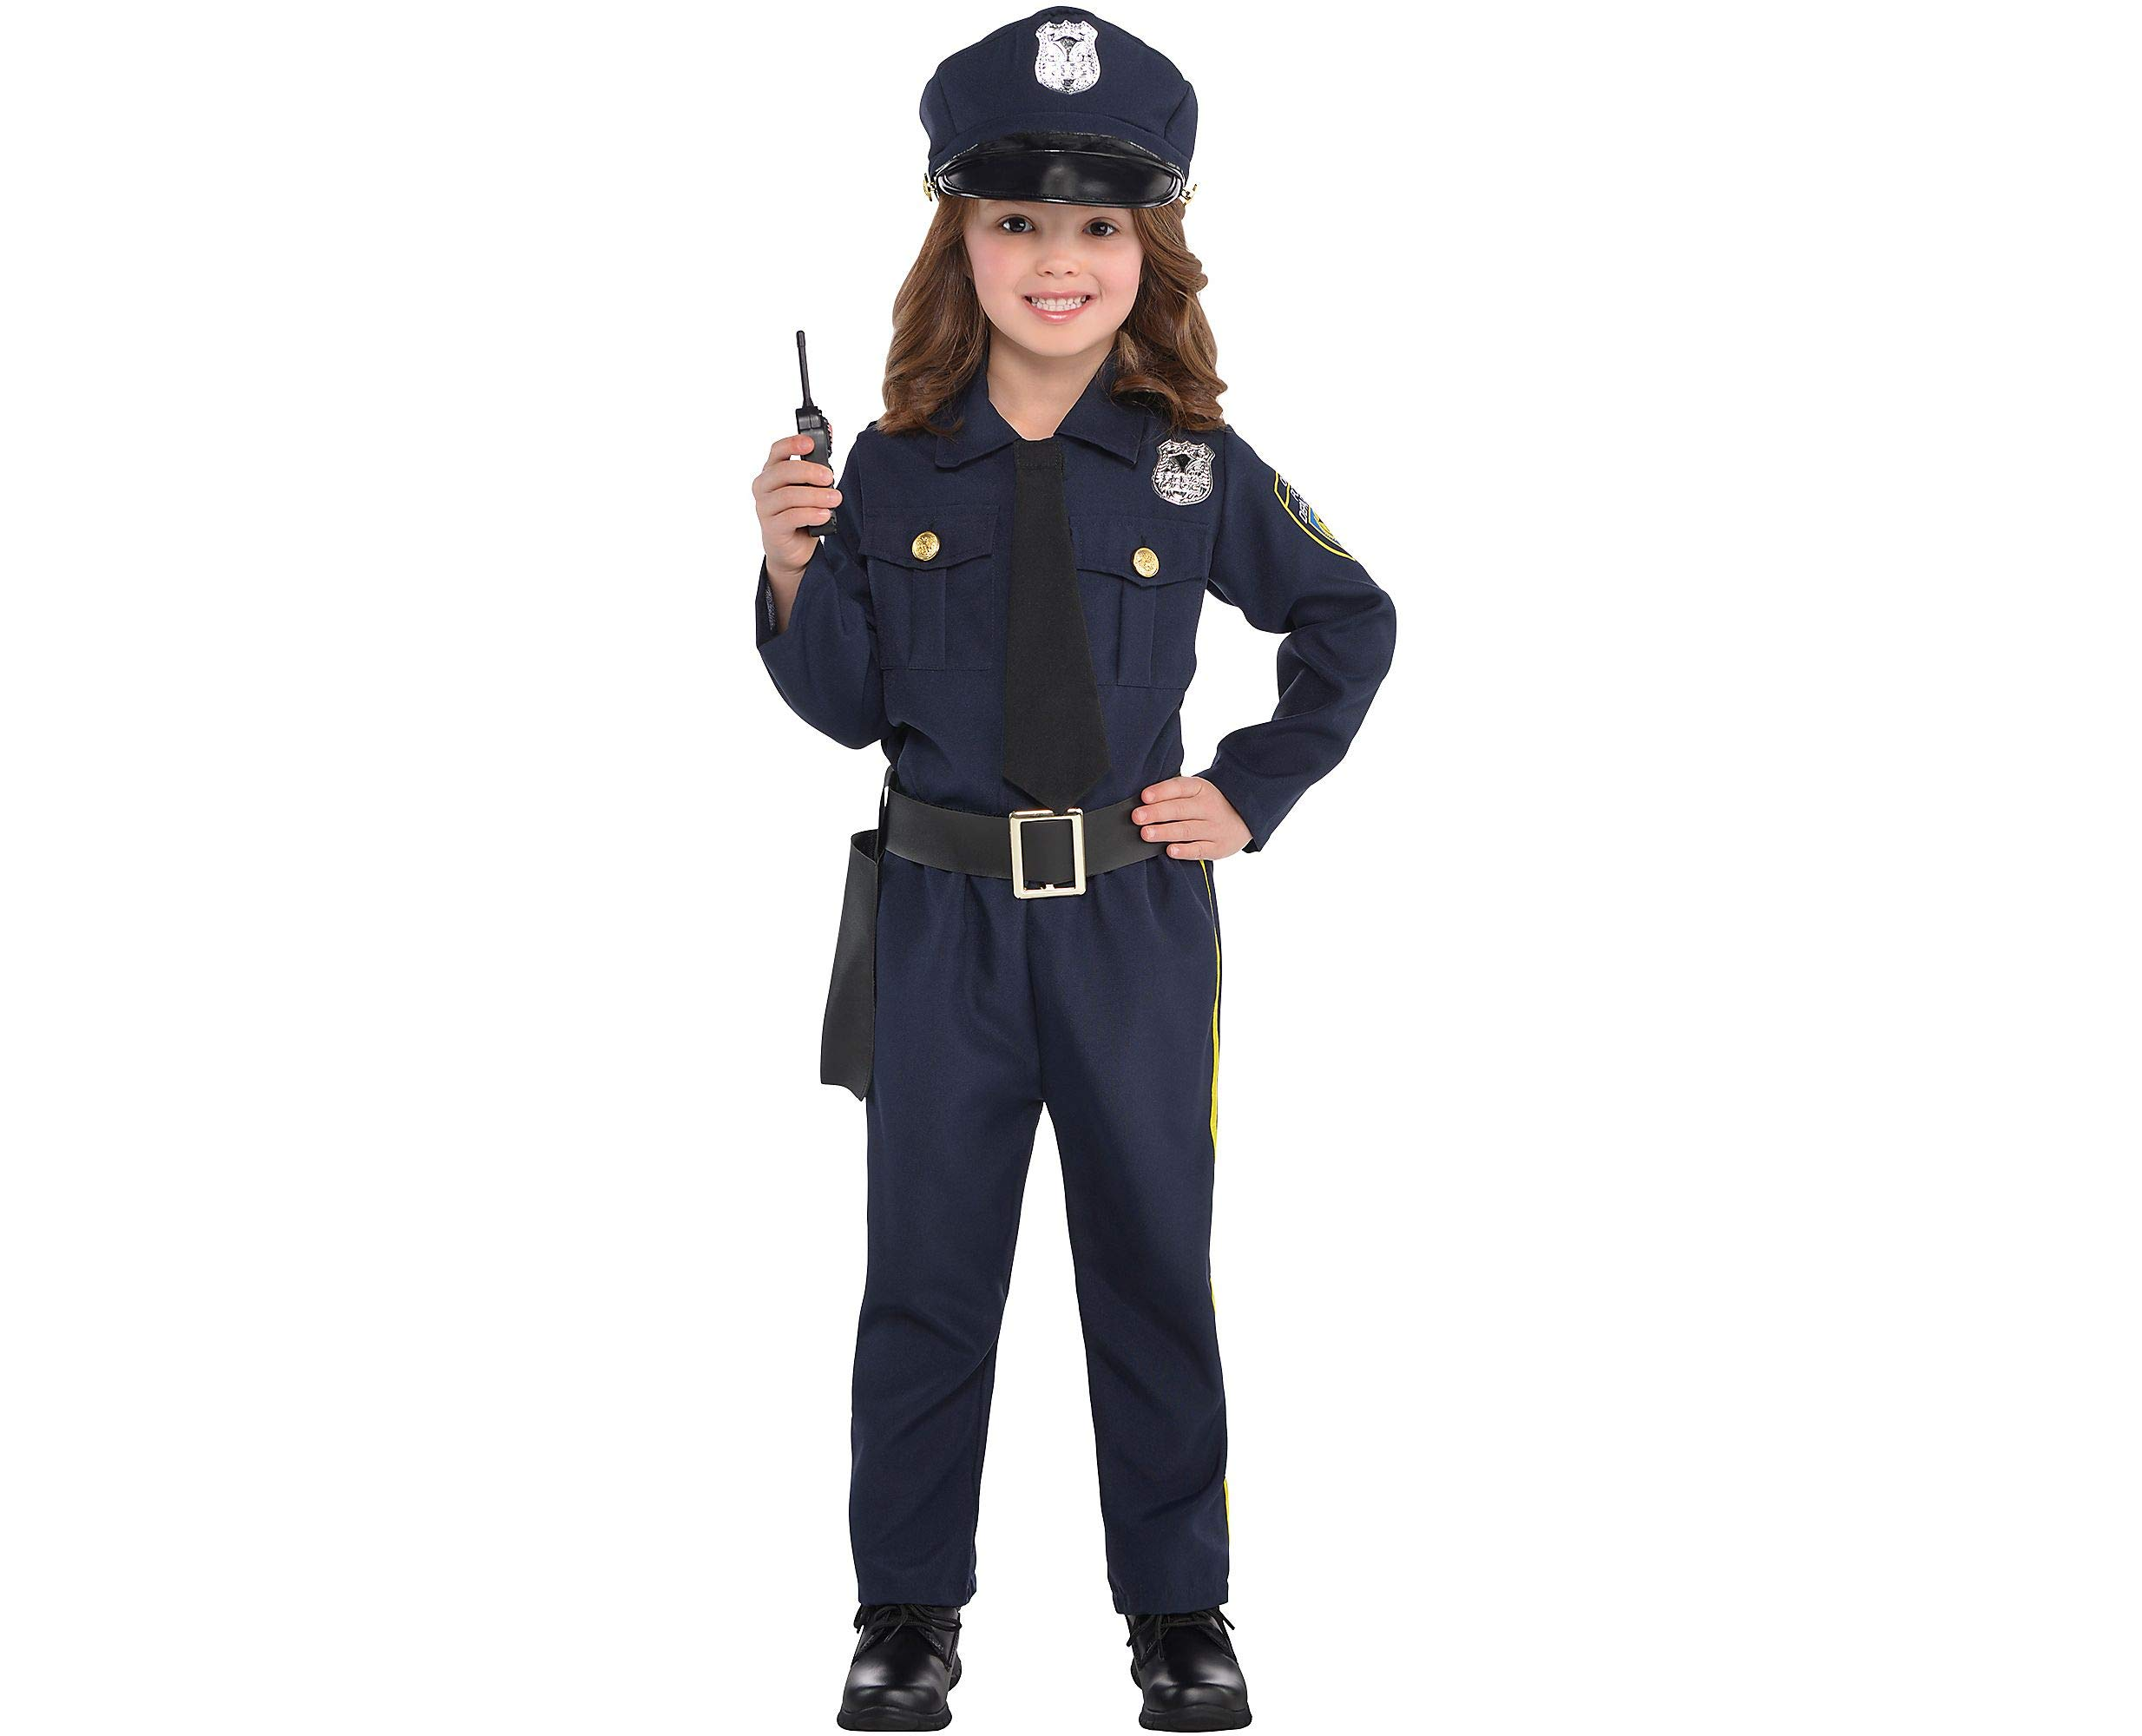 AMSCAN Classic Police Officer Halloween Costume for Girls, Small, with Included Accessories